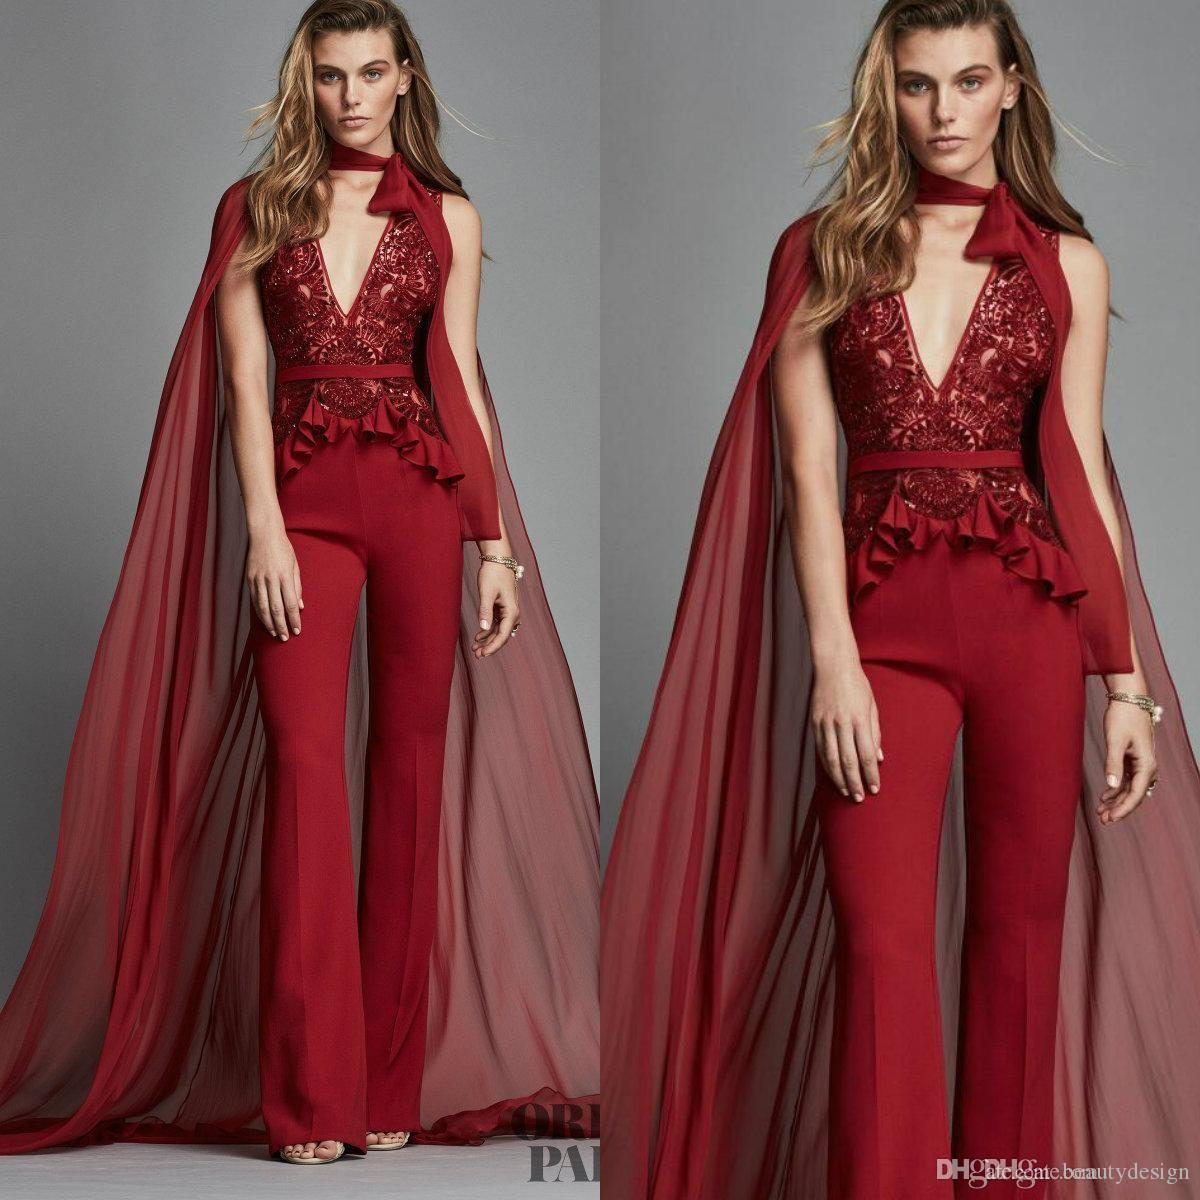 Zuhair Murad Red Evening Dresses With Warp Deep V Neck Lace Appliques  Fashion Women Jumpsuits Custom Made Prom Dress Chiffon Party Gowns Ladies  Occasion ... a13421598f62